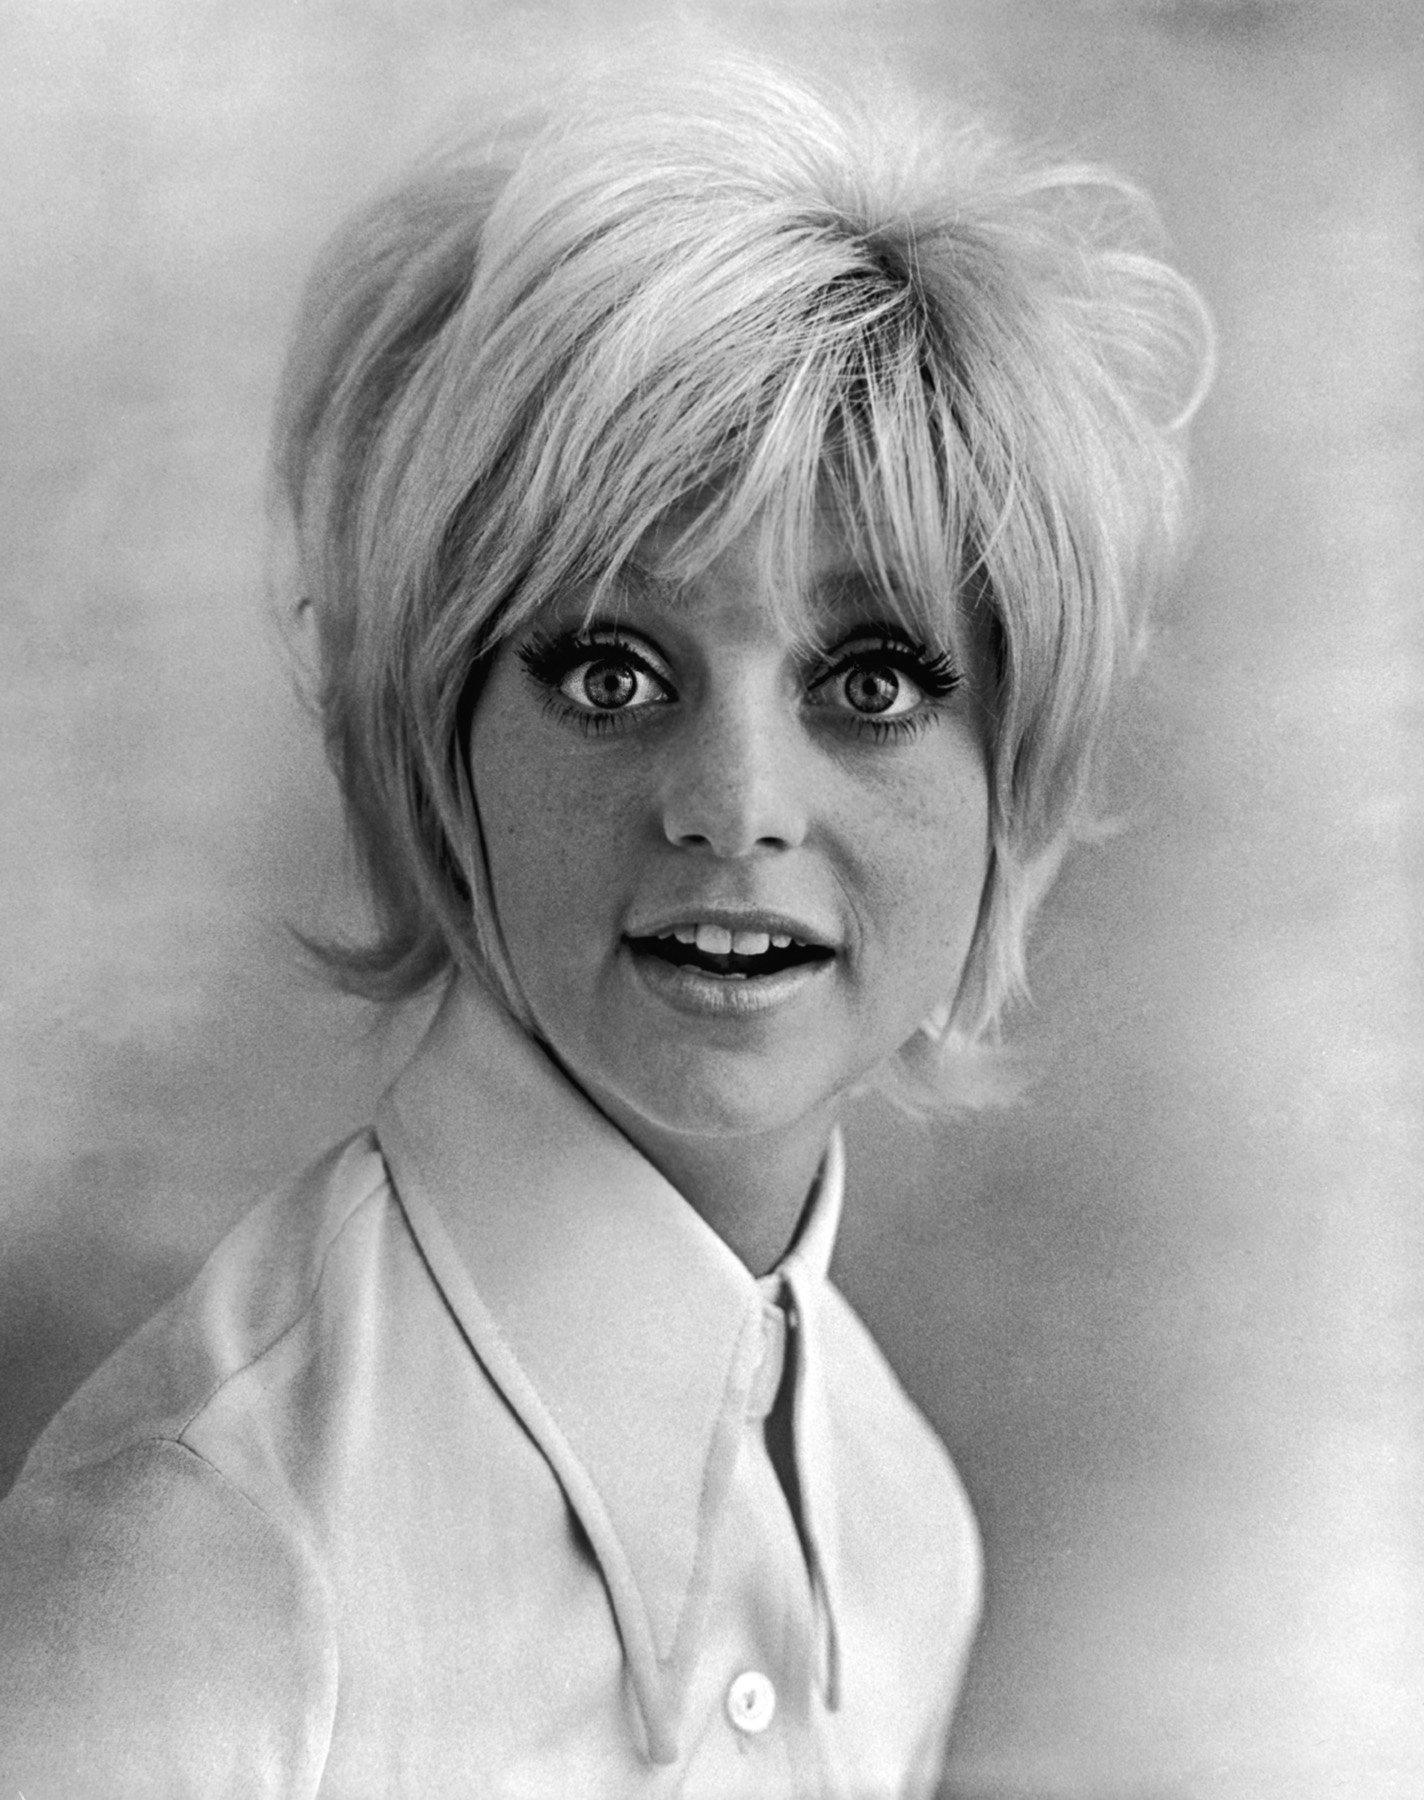 Happy 72nd Birthday to the legendary Oscar-winning actress Goldie Hawn! (November 21, 1945)